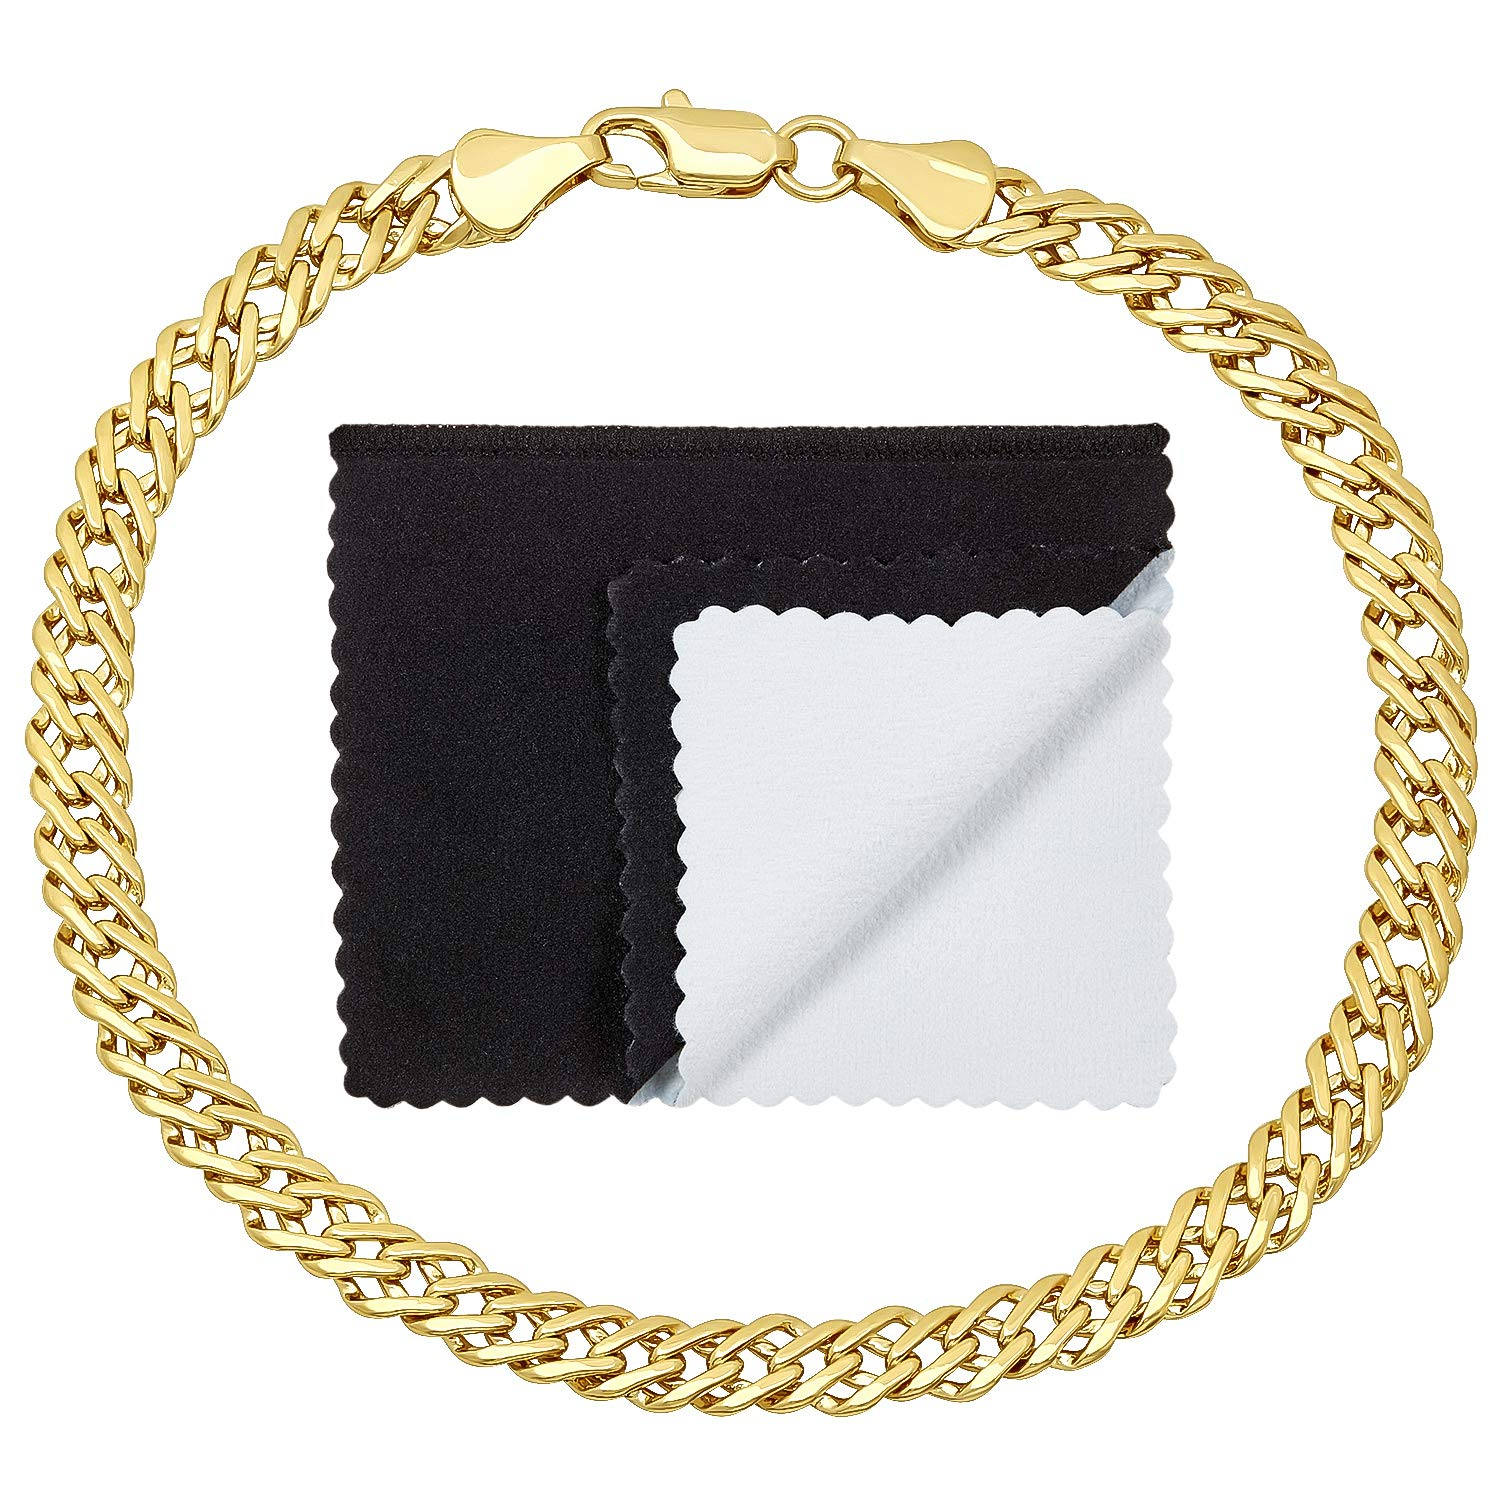 The Bling Factory 5mm 14k Gold Plated Link Bracelet, 7'' + Microfiber Jewelry Polishing Cloth